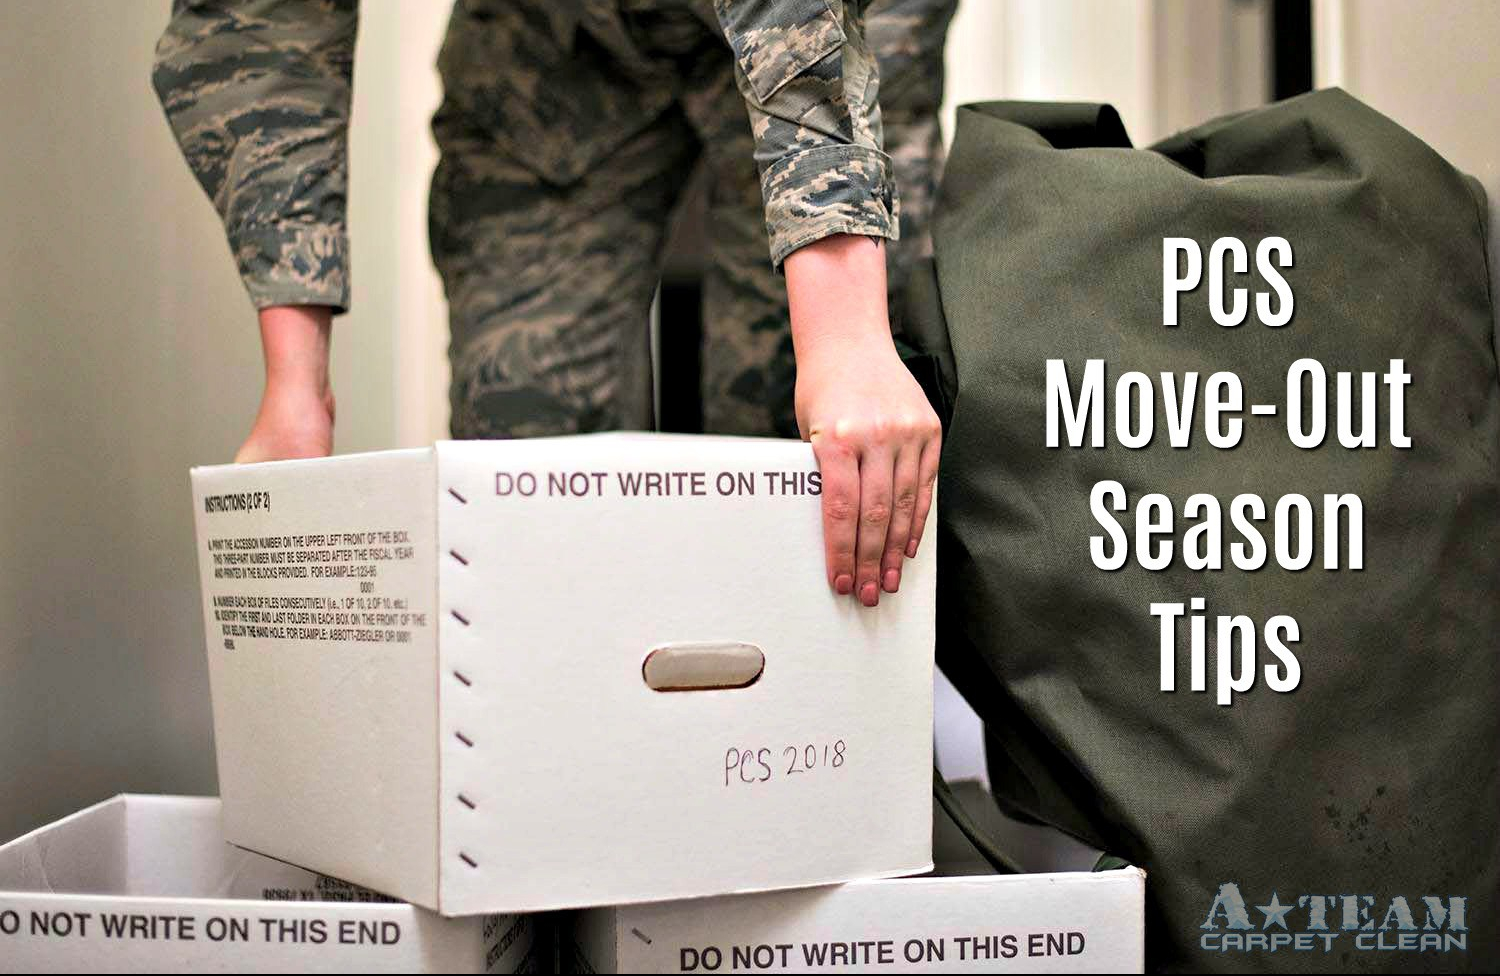 PCS moveout season tips